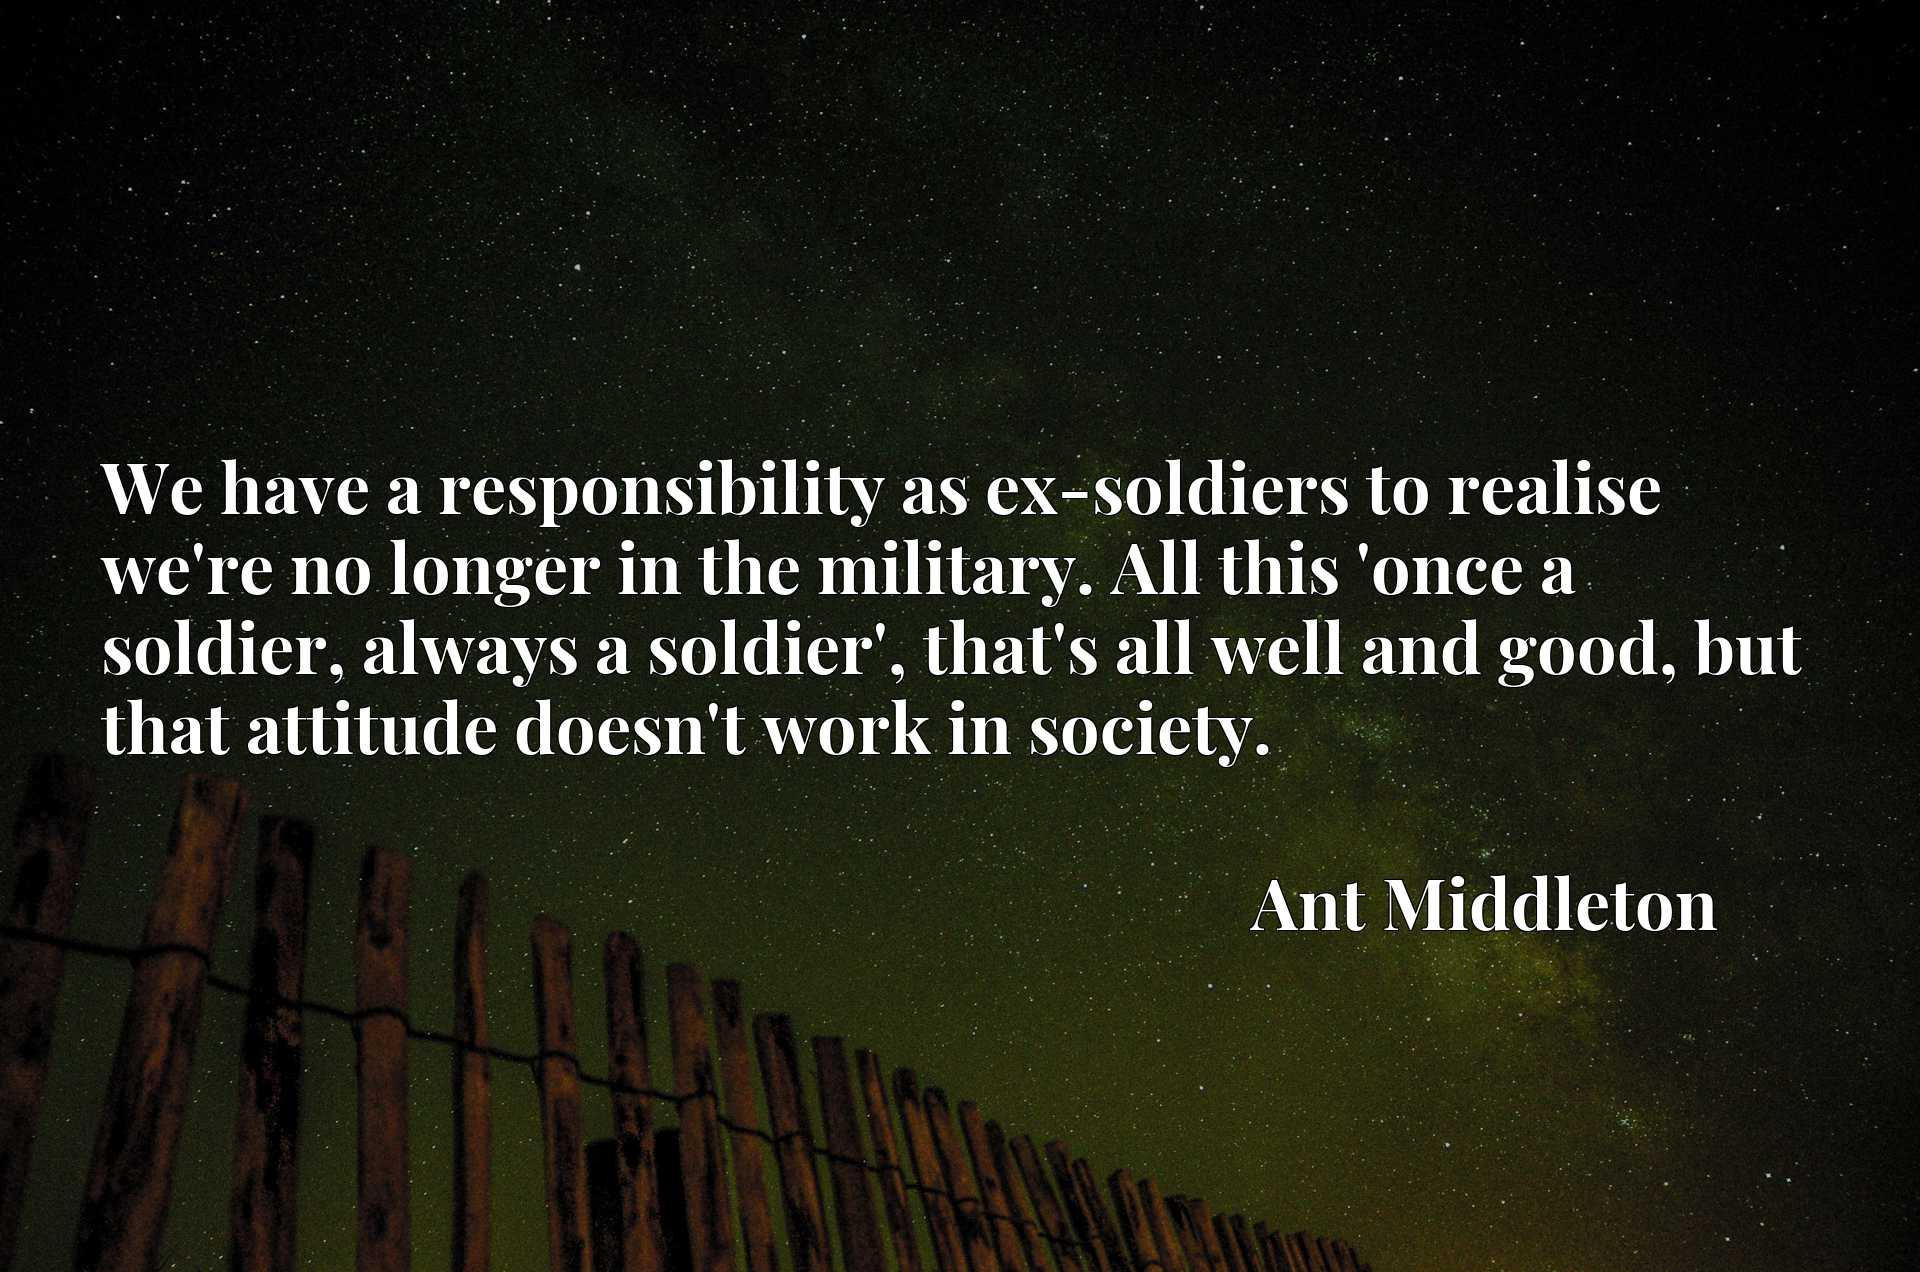 We have a responsibility as ex-soldiers to realise we're no longer in the military. All this 'once a soldier, always a soldier', that's all well and good, but that attitude doesn't work in society.